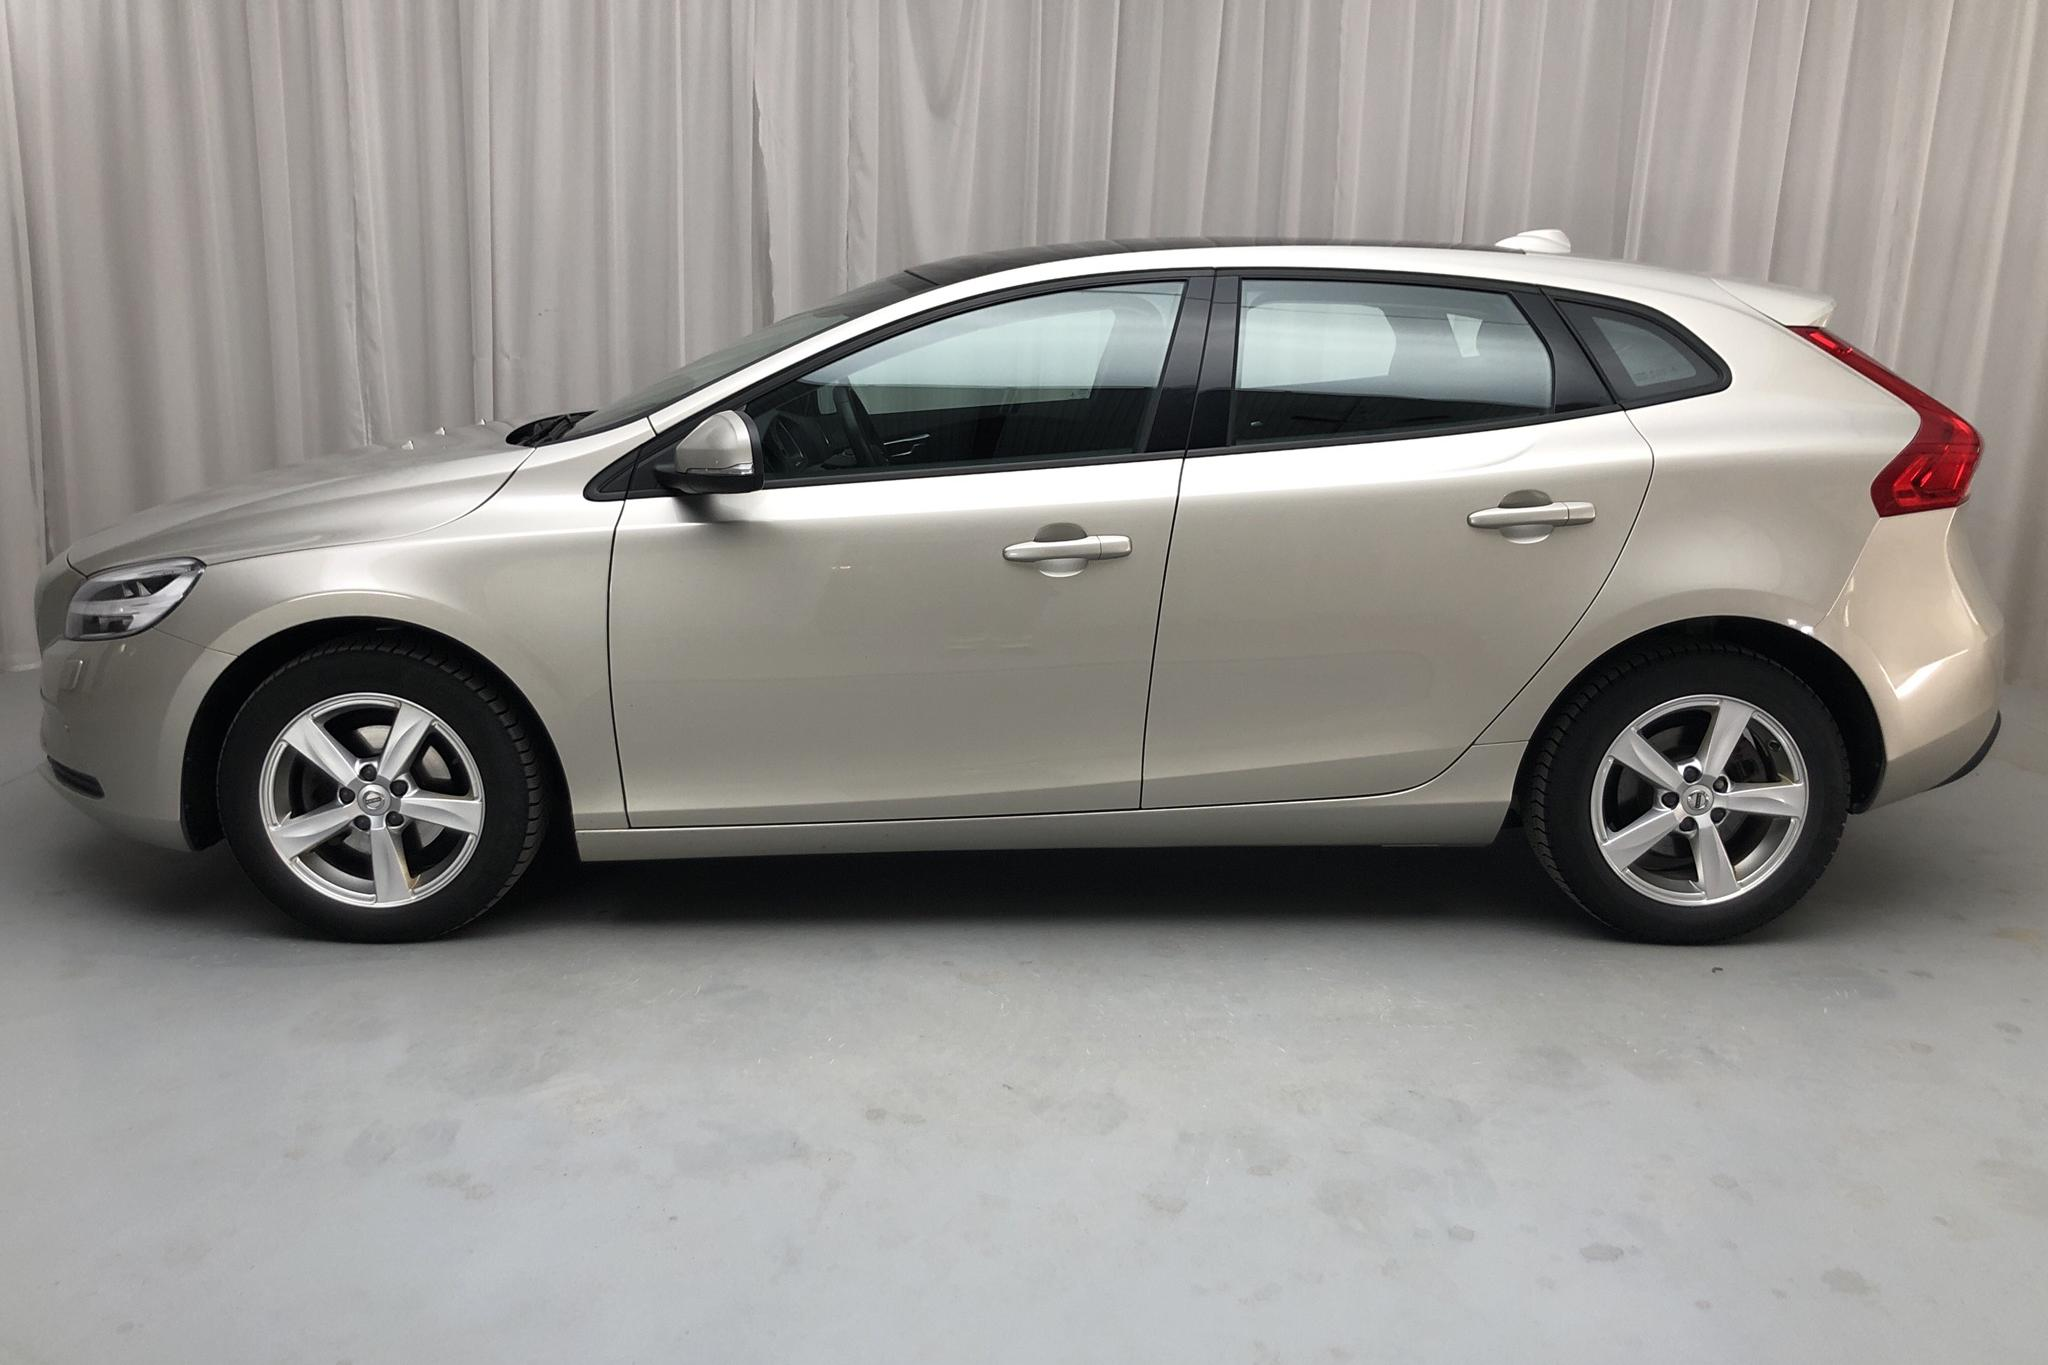 Volvo V40 D2 (120hk) - 63 000 km - Manual - Light Brown - 2018